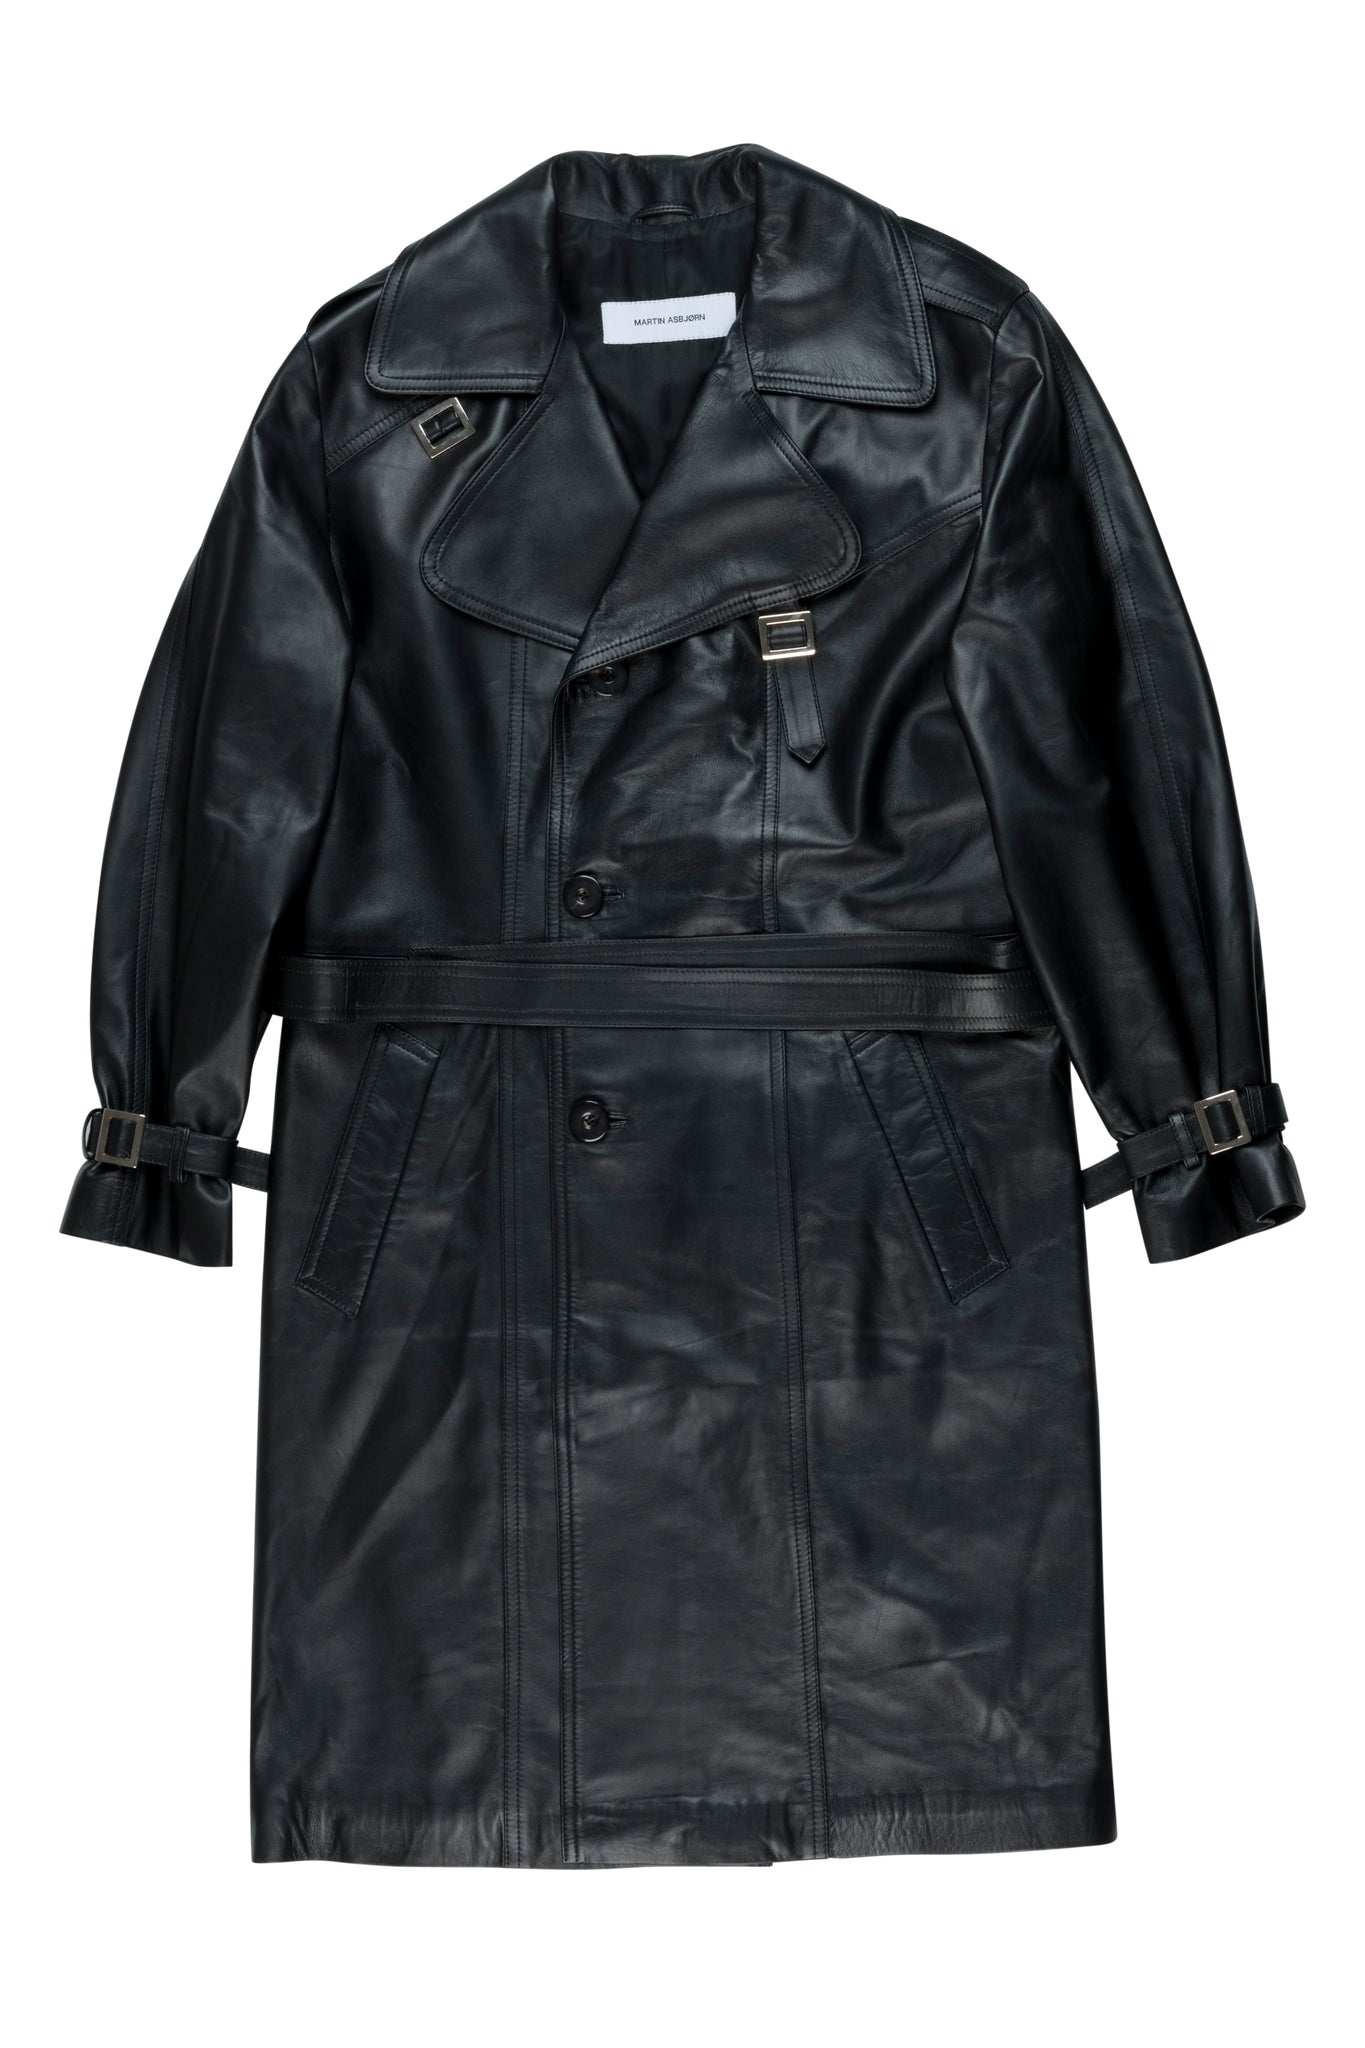 martin Asbjorn ma black trenchcoat leather ss20 spring20 menswear unisex jacket